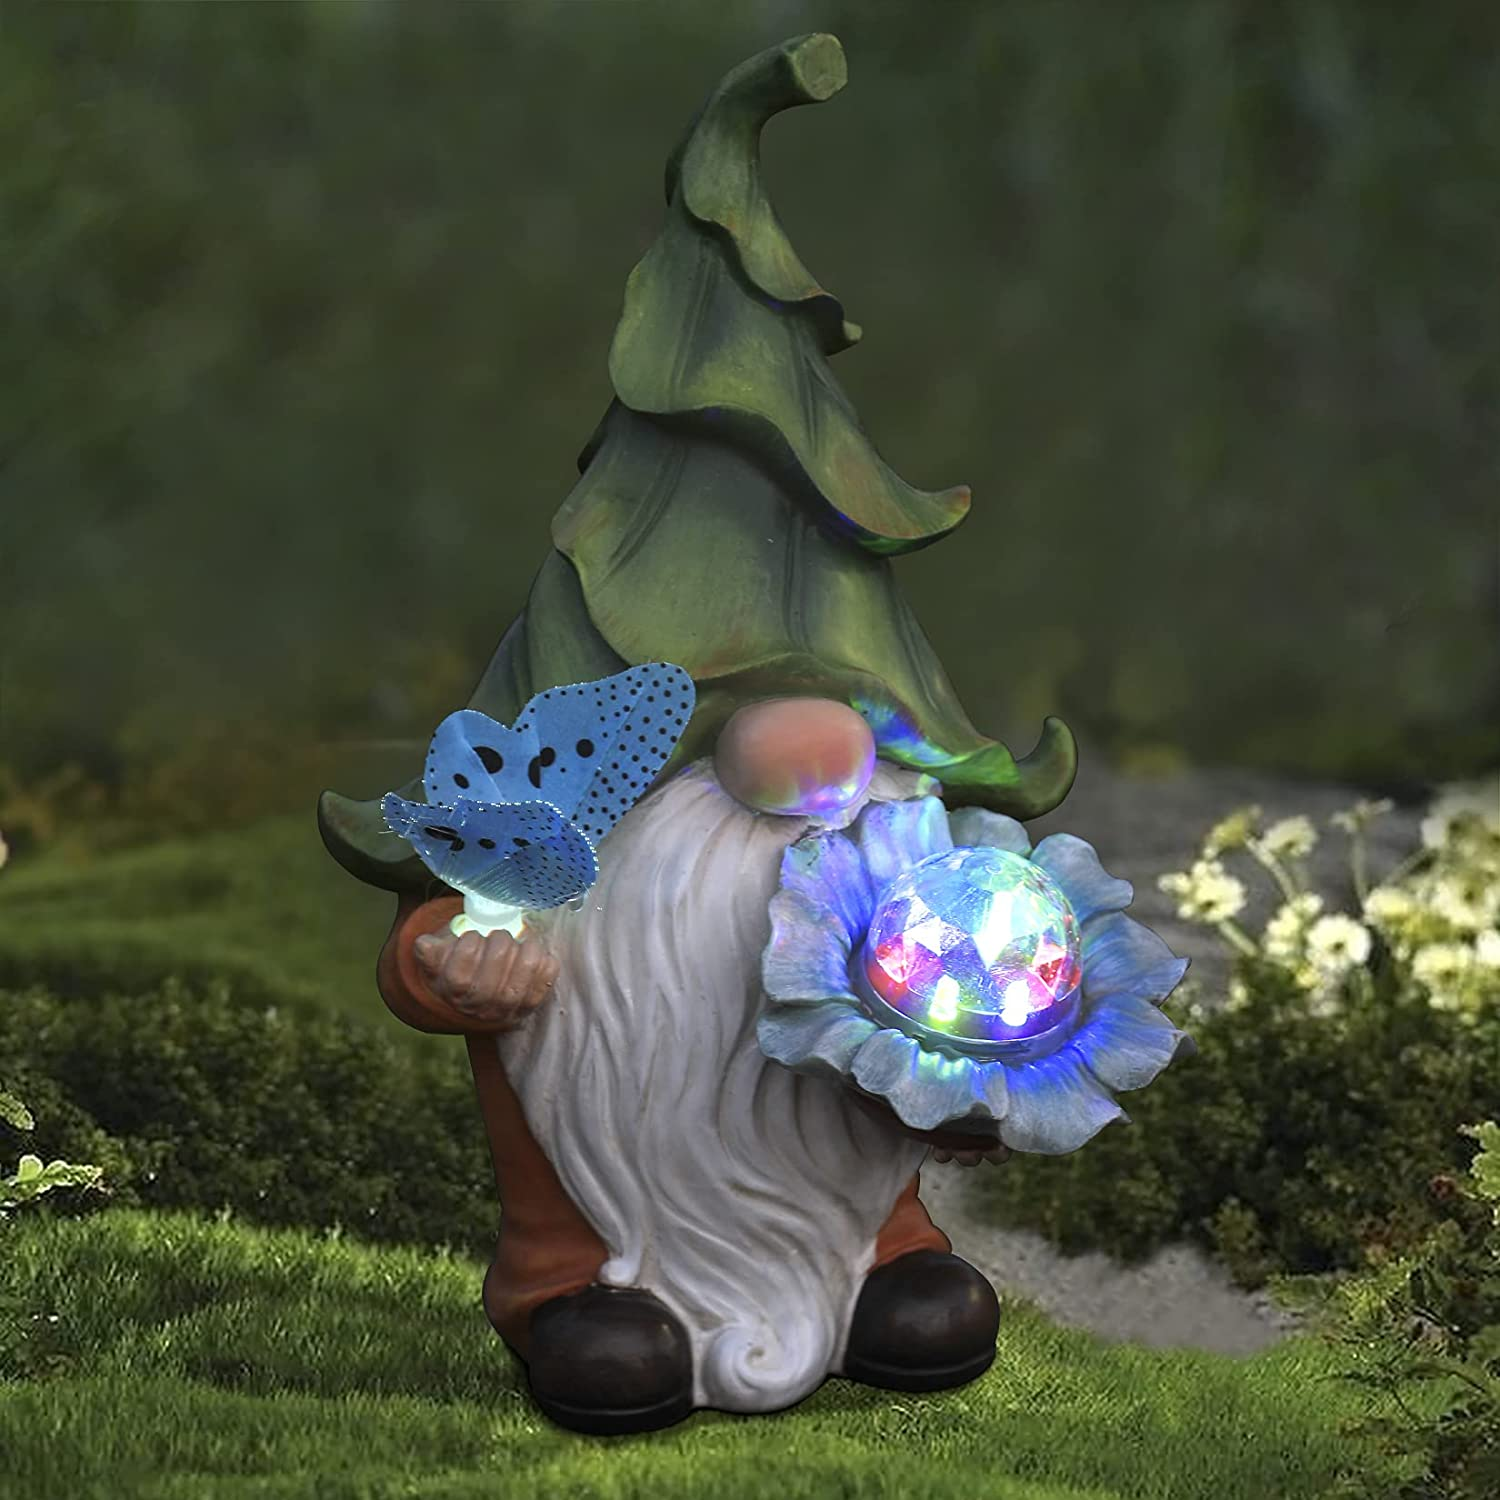 Garden Gnome Statue - Resin Gnome Figurine Holding Magic Orb and Butterfly with Solar LED Lights, Outdoor Summer Decoration for Patio Yard Lawn Porch, Ornament Gifts for Mom